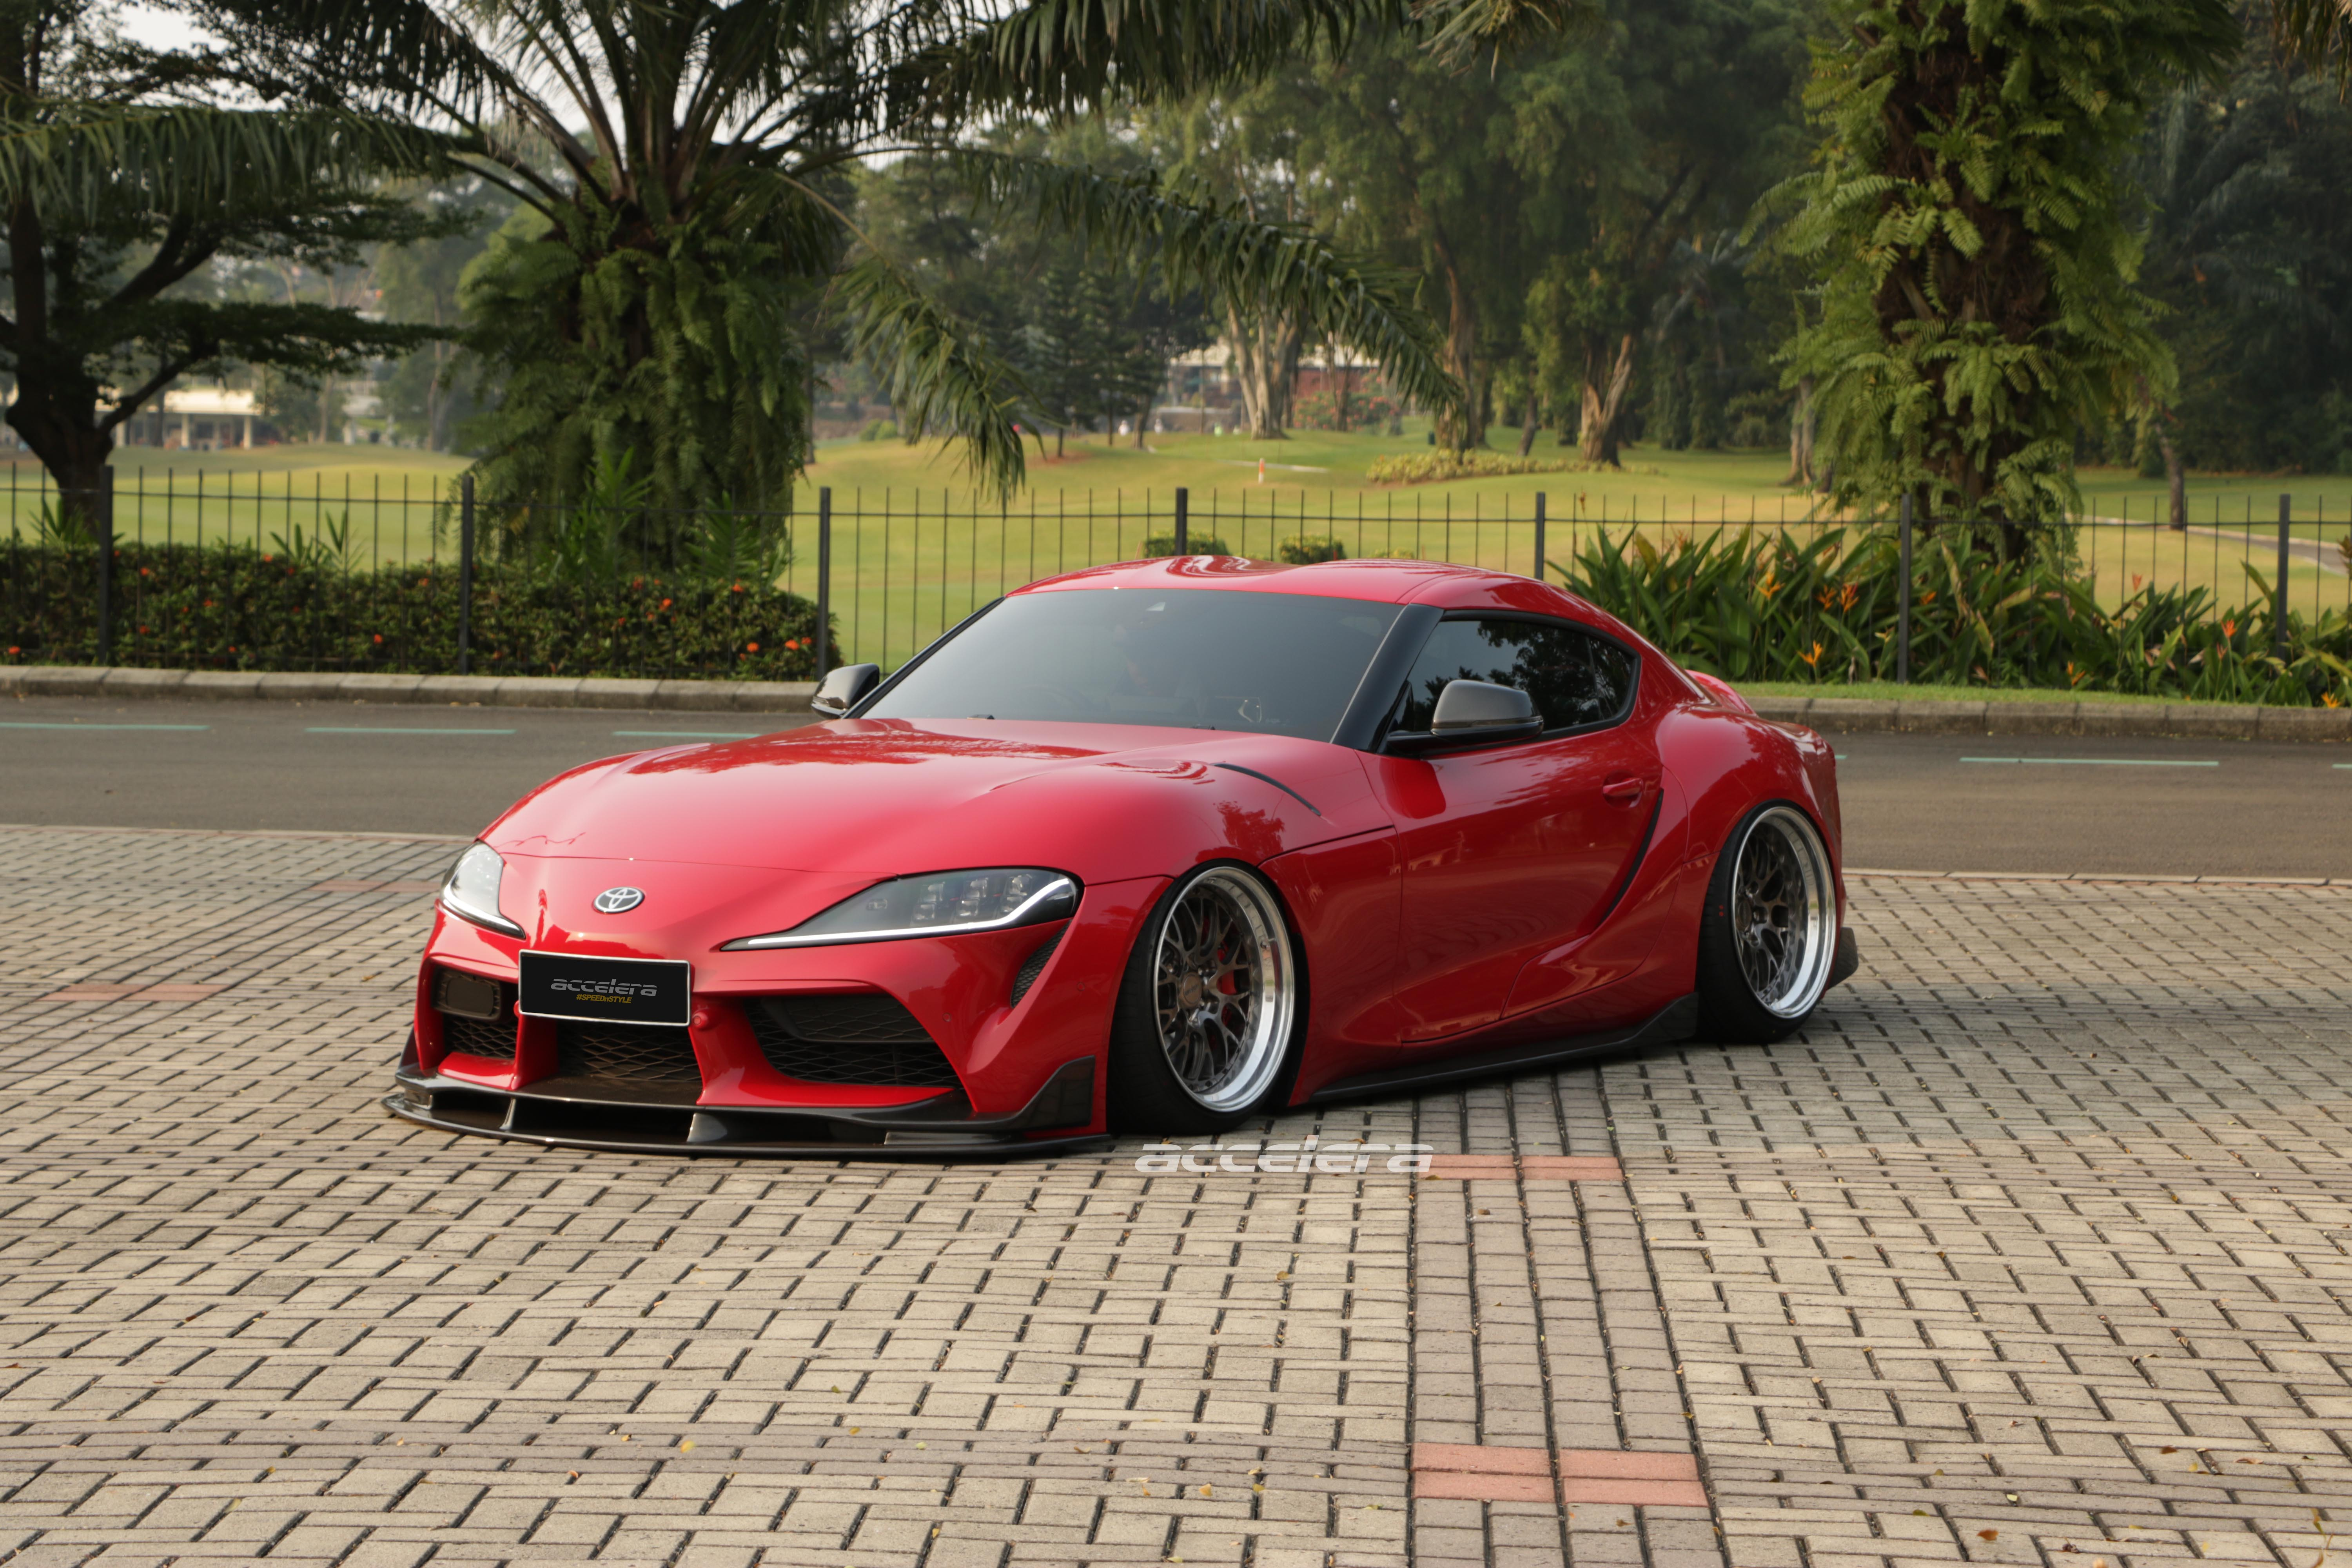 Super Supra: Calm And Stylish